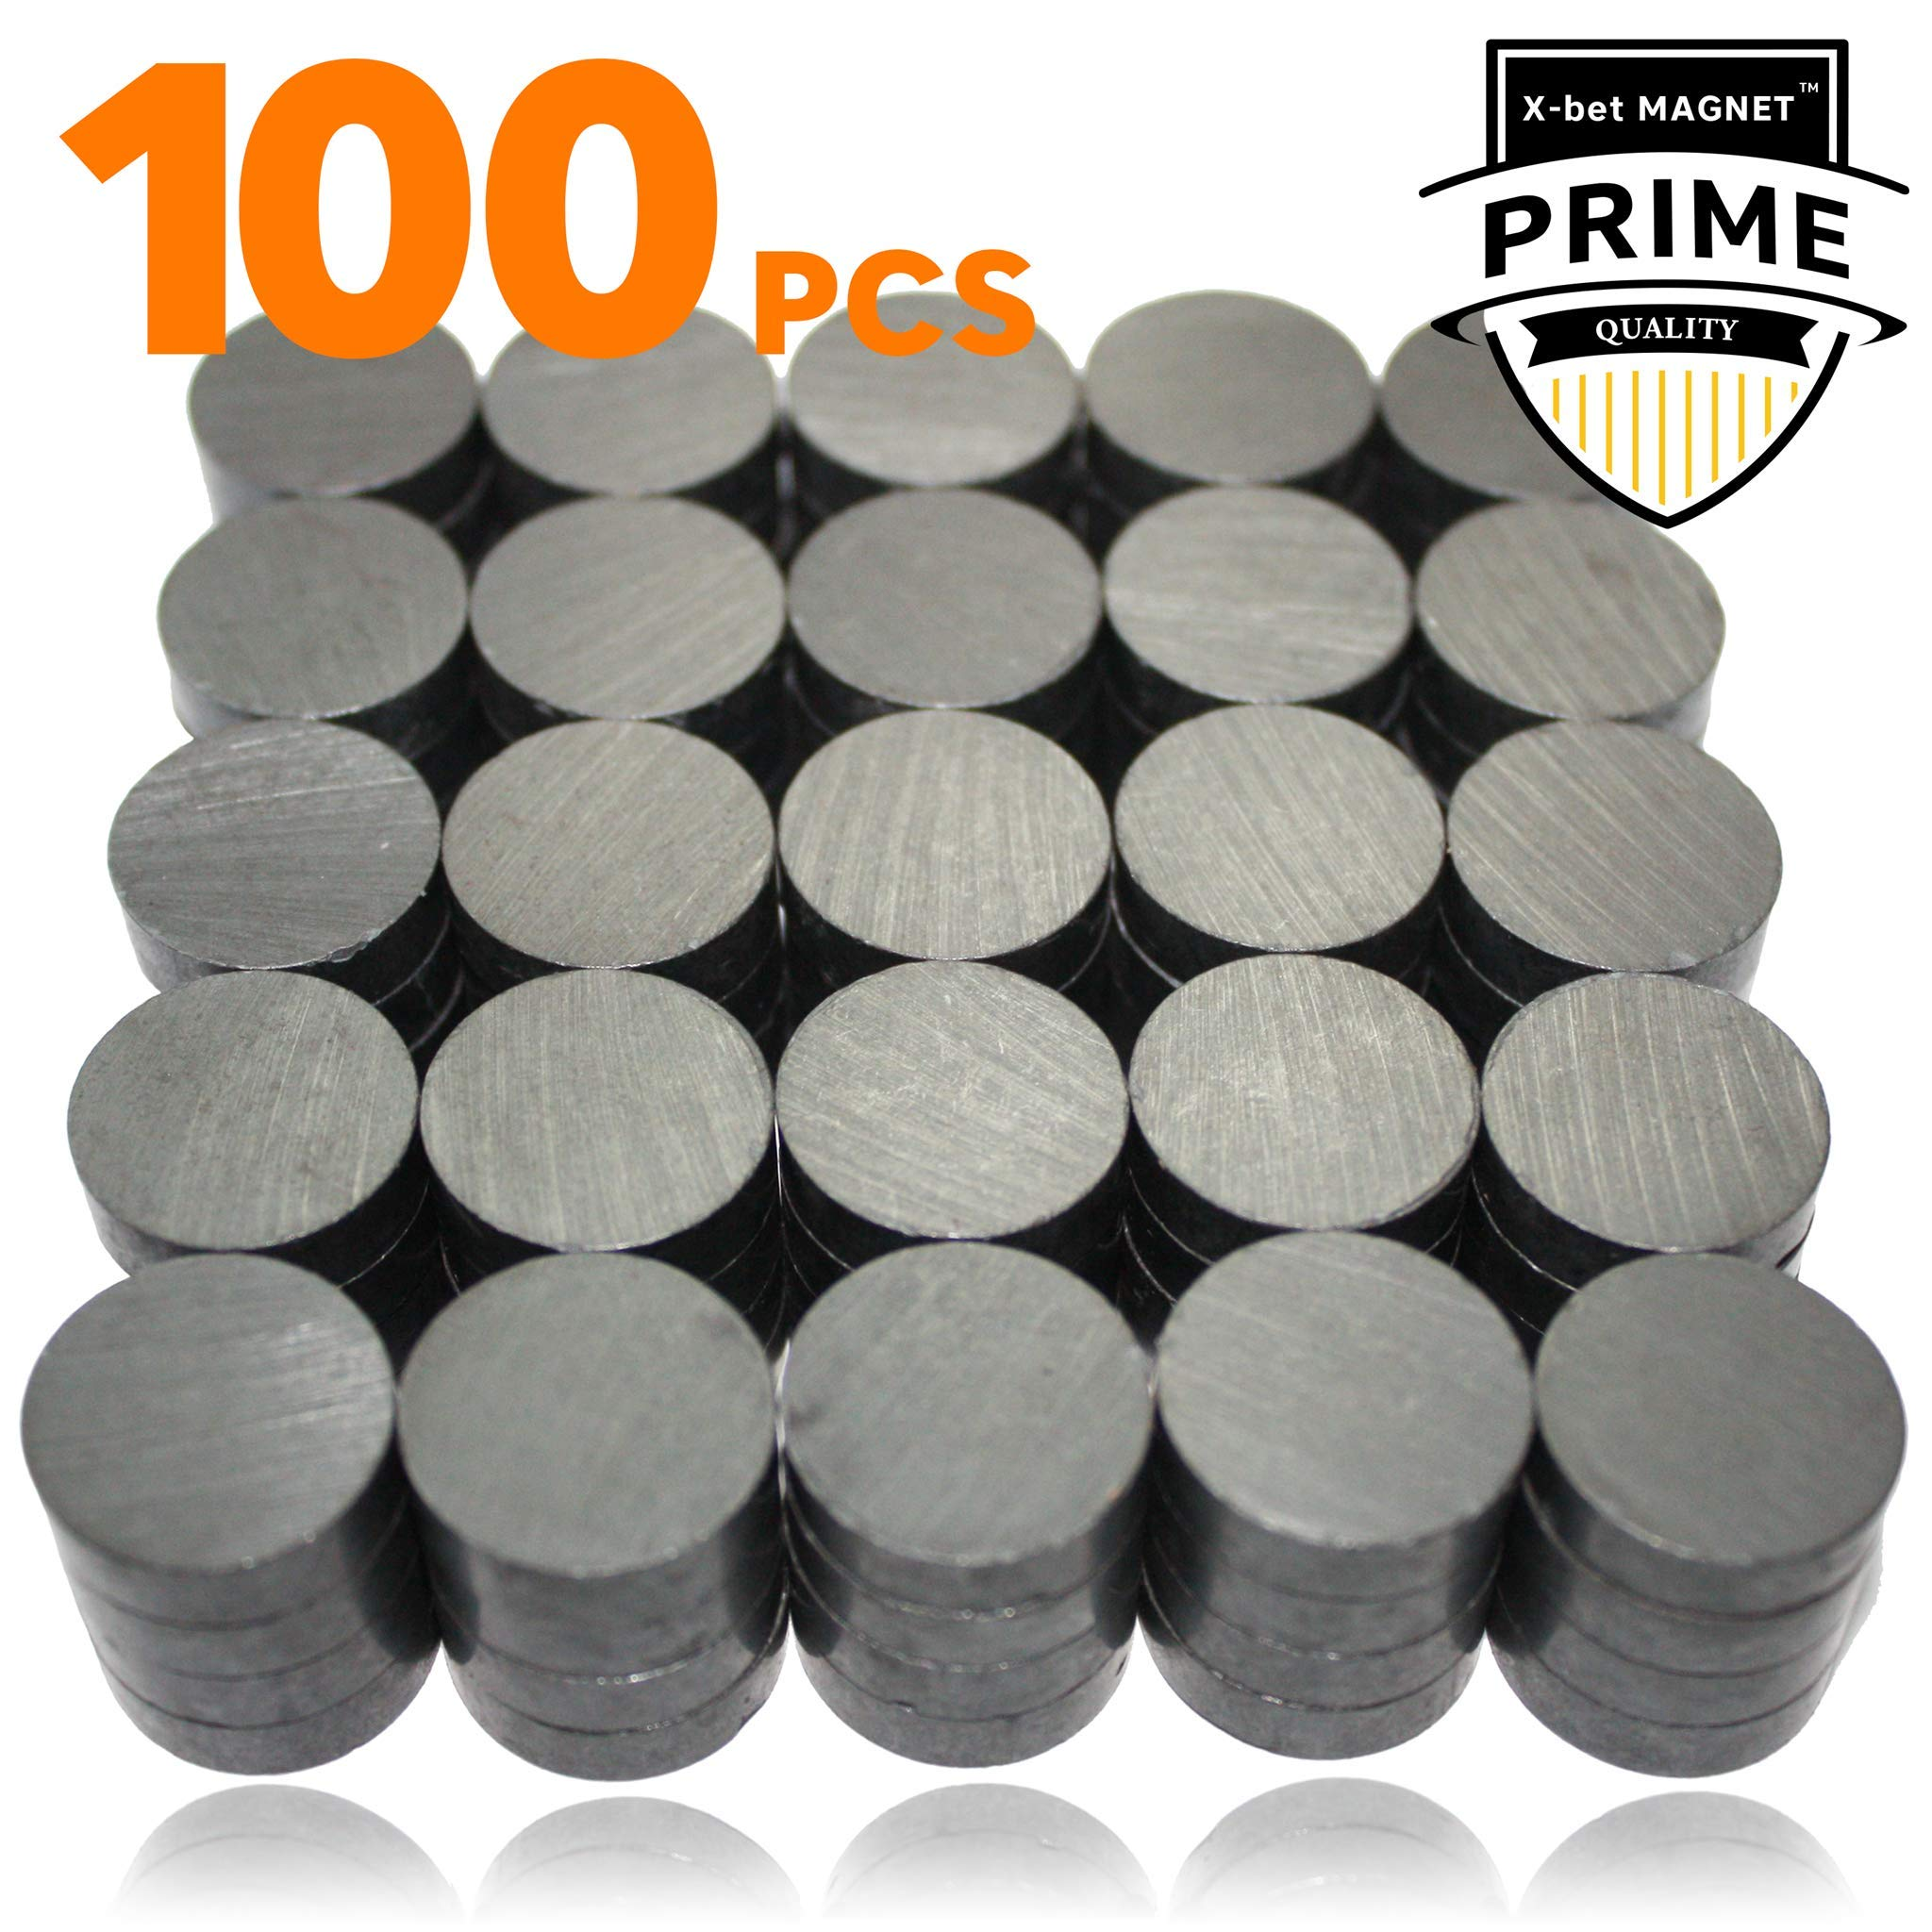 X-bet MAGNET ™ 100 pcs Ceramic Magnets - Tiny 18 mm (.709 inch) Round Disc - Flat Circle Magnets Bulk for Crafts, Science & hobbies - Perfect for Refrigerator, Whiteboard, Fridge by X-bet MAGNET (Image #1)